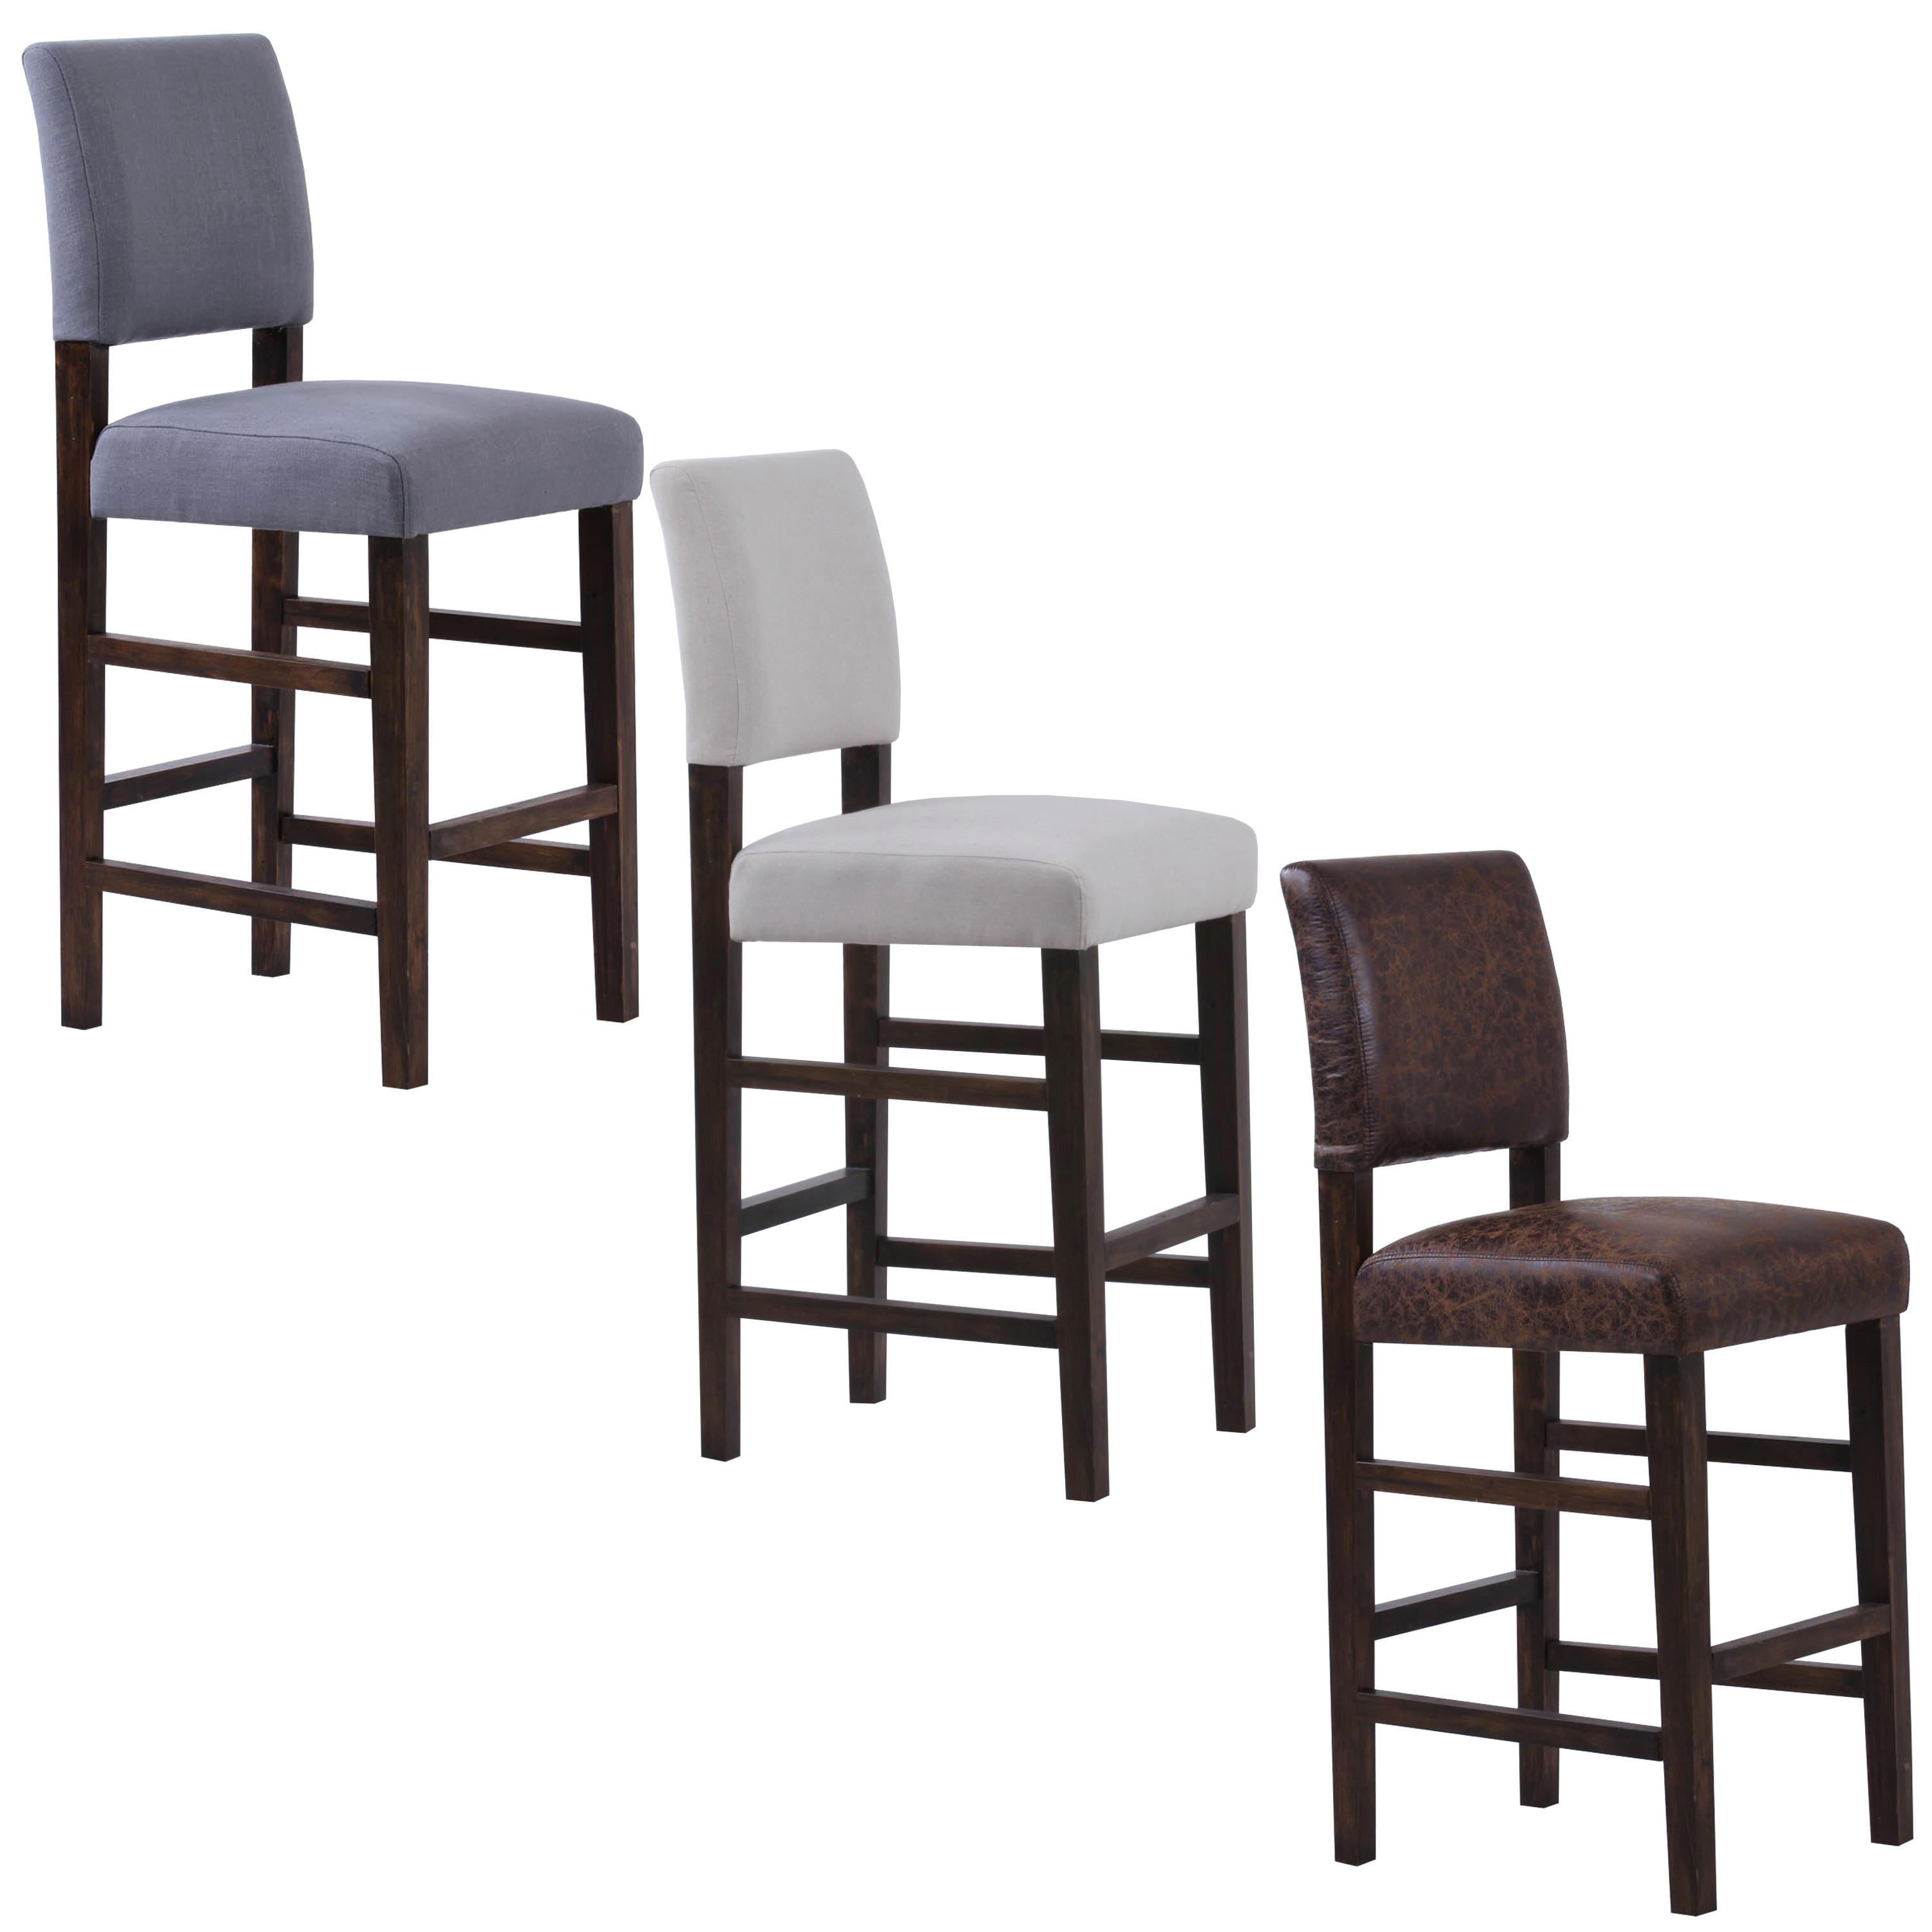 Bridger Upholstered Bar Chairs (Set of 2)